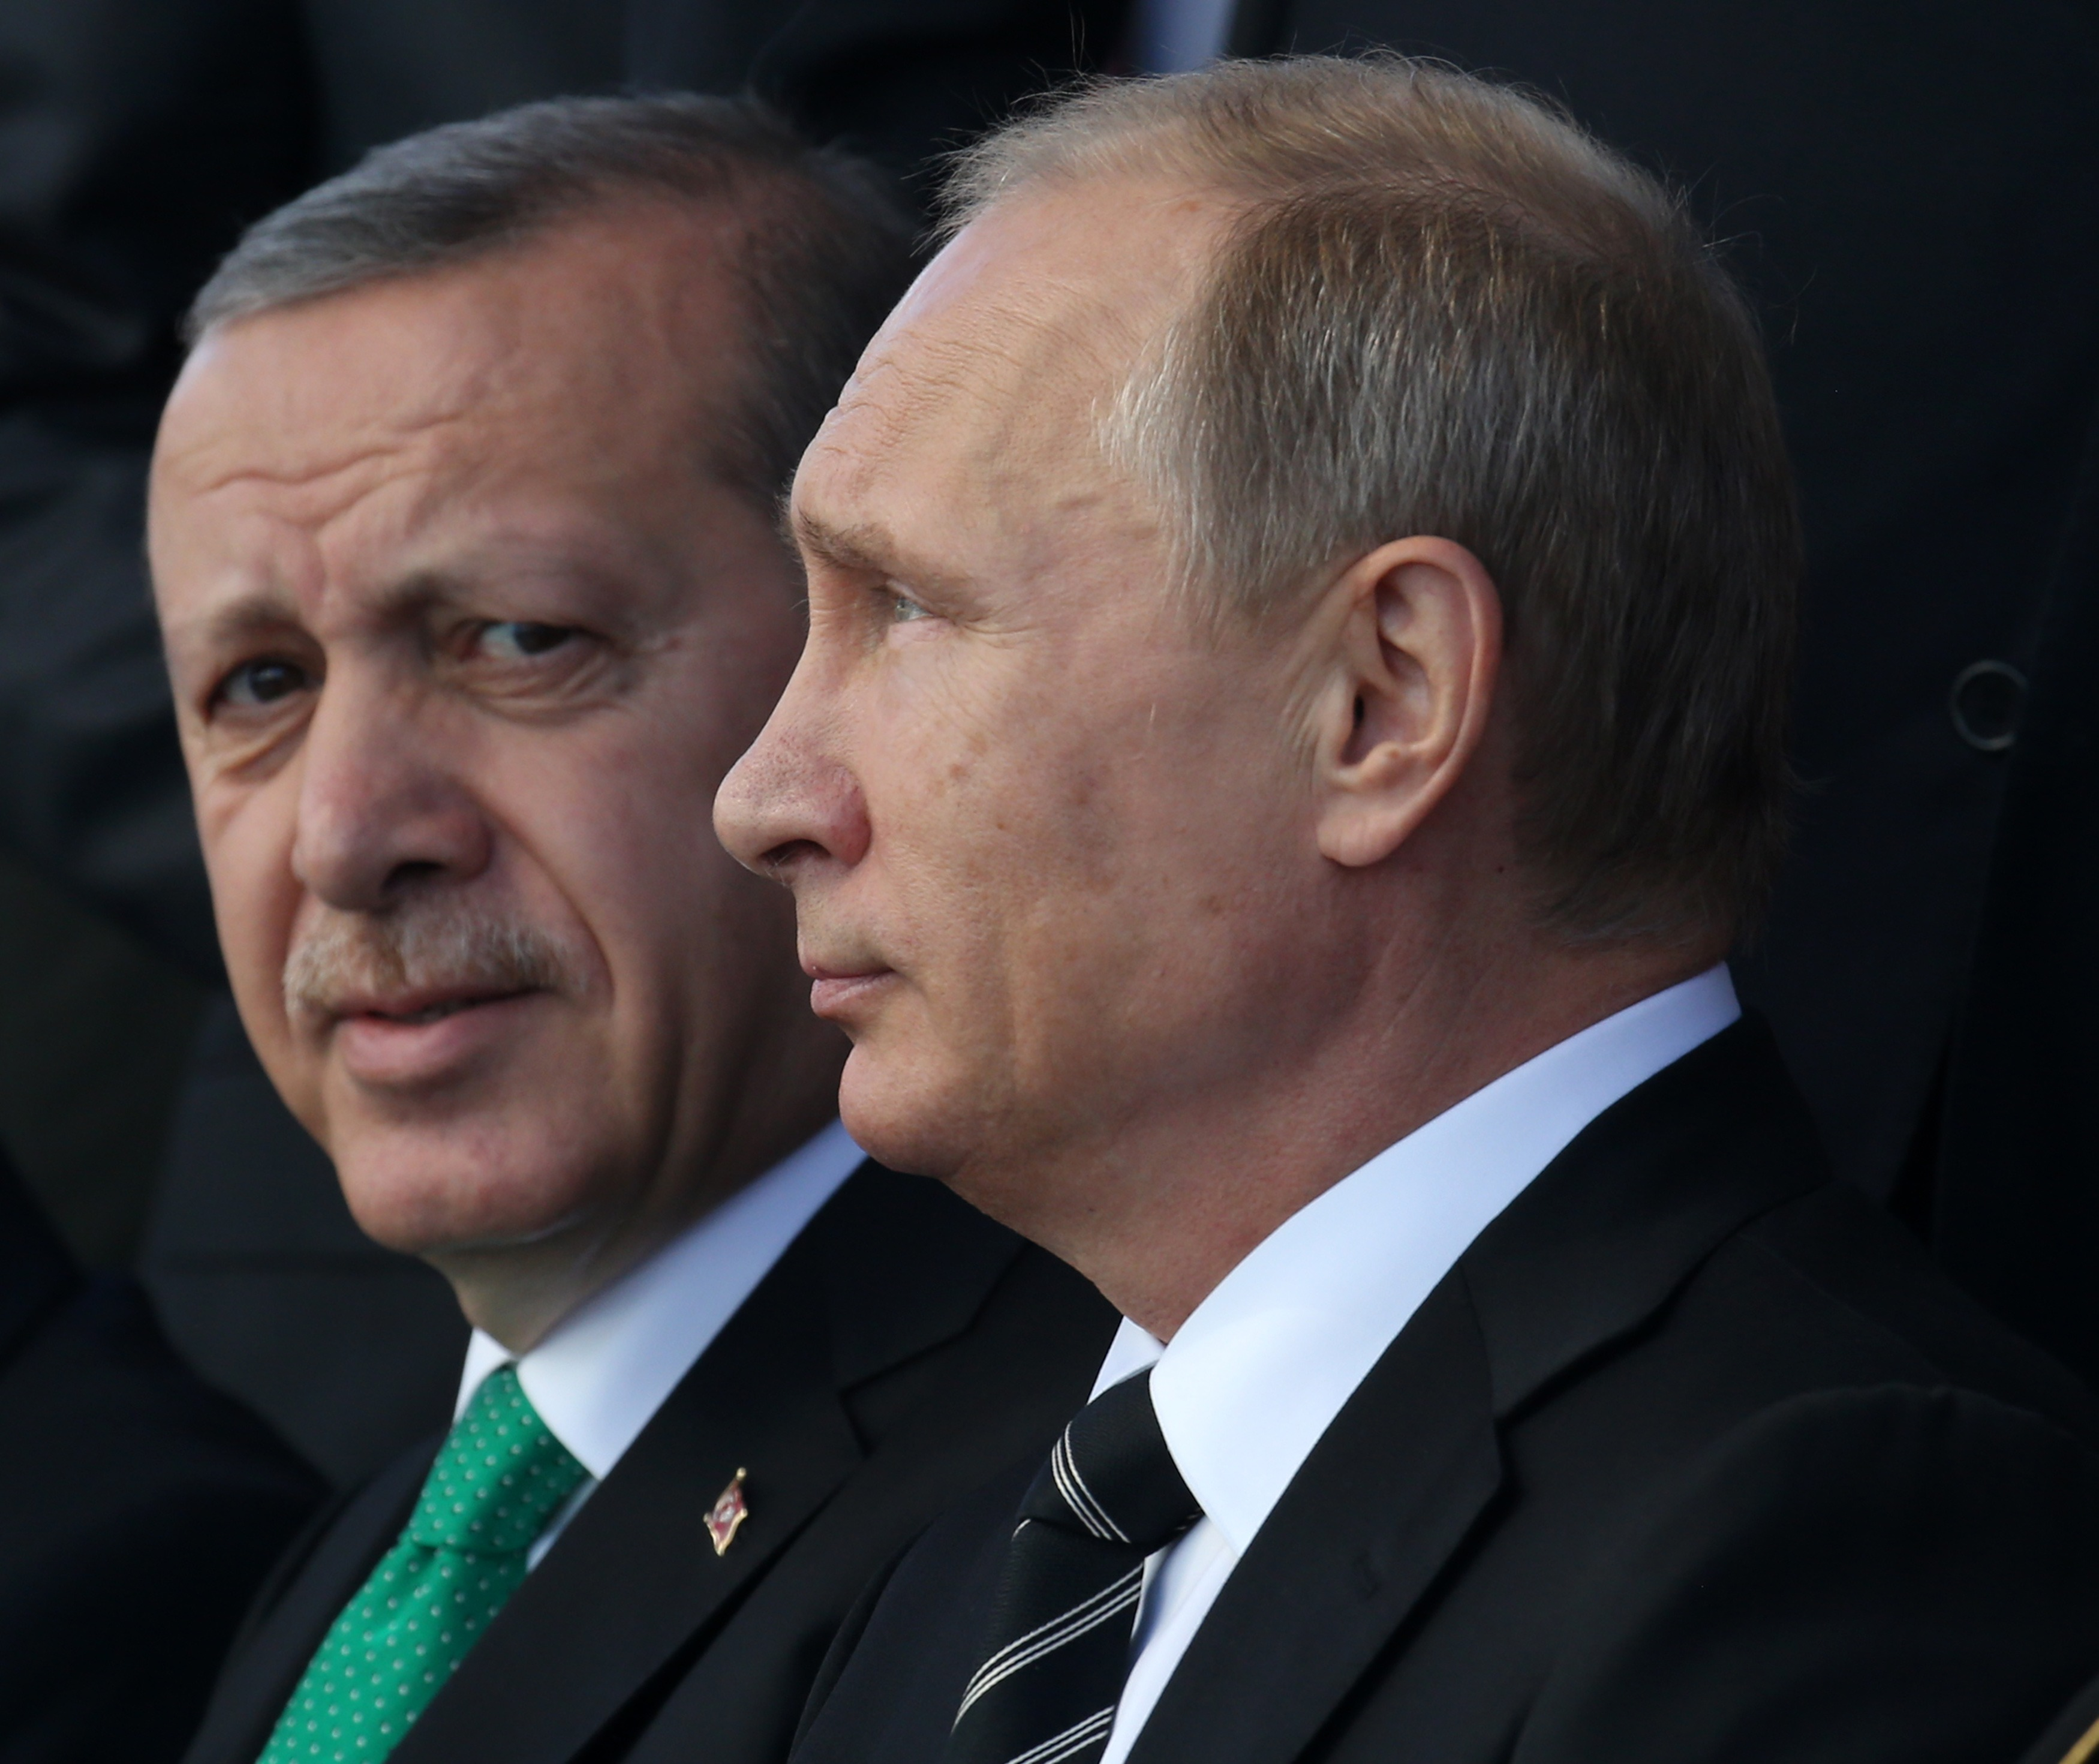 Russian President Vladimir Putin, right, and Turkish President Recep Tayyip Erdogan attend an opening ceremony for the newly restored Moscow Cathedral Mosque in Moscow on Sept. 23, 2015